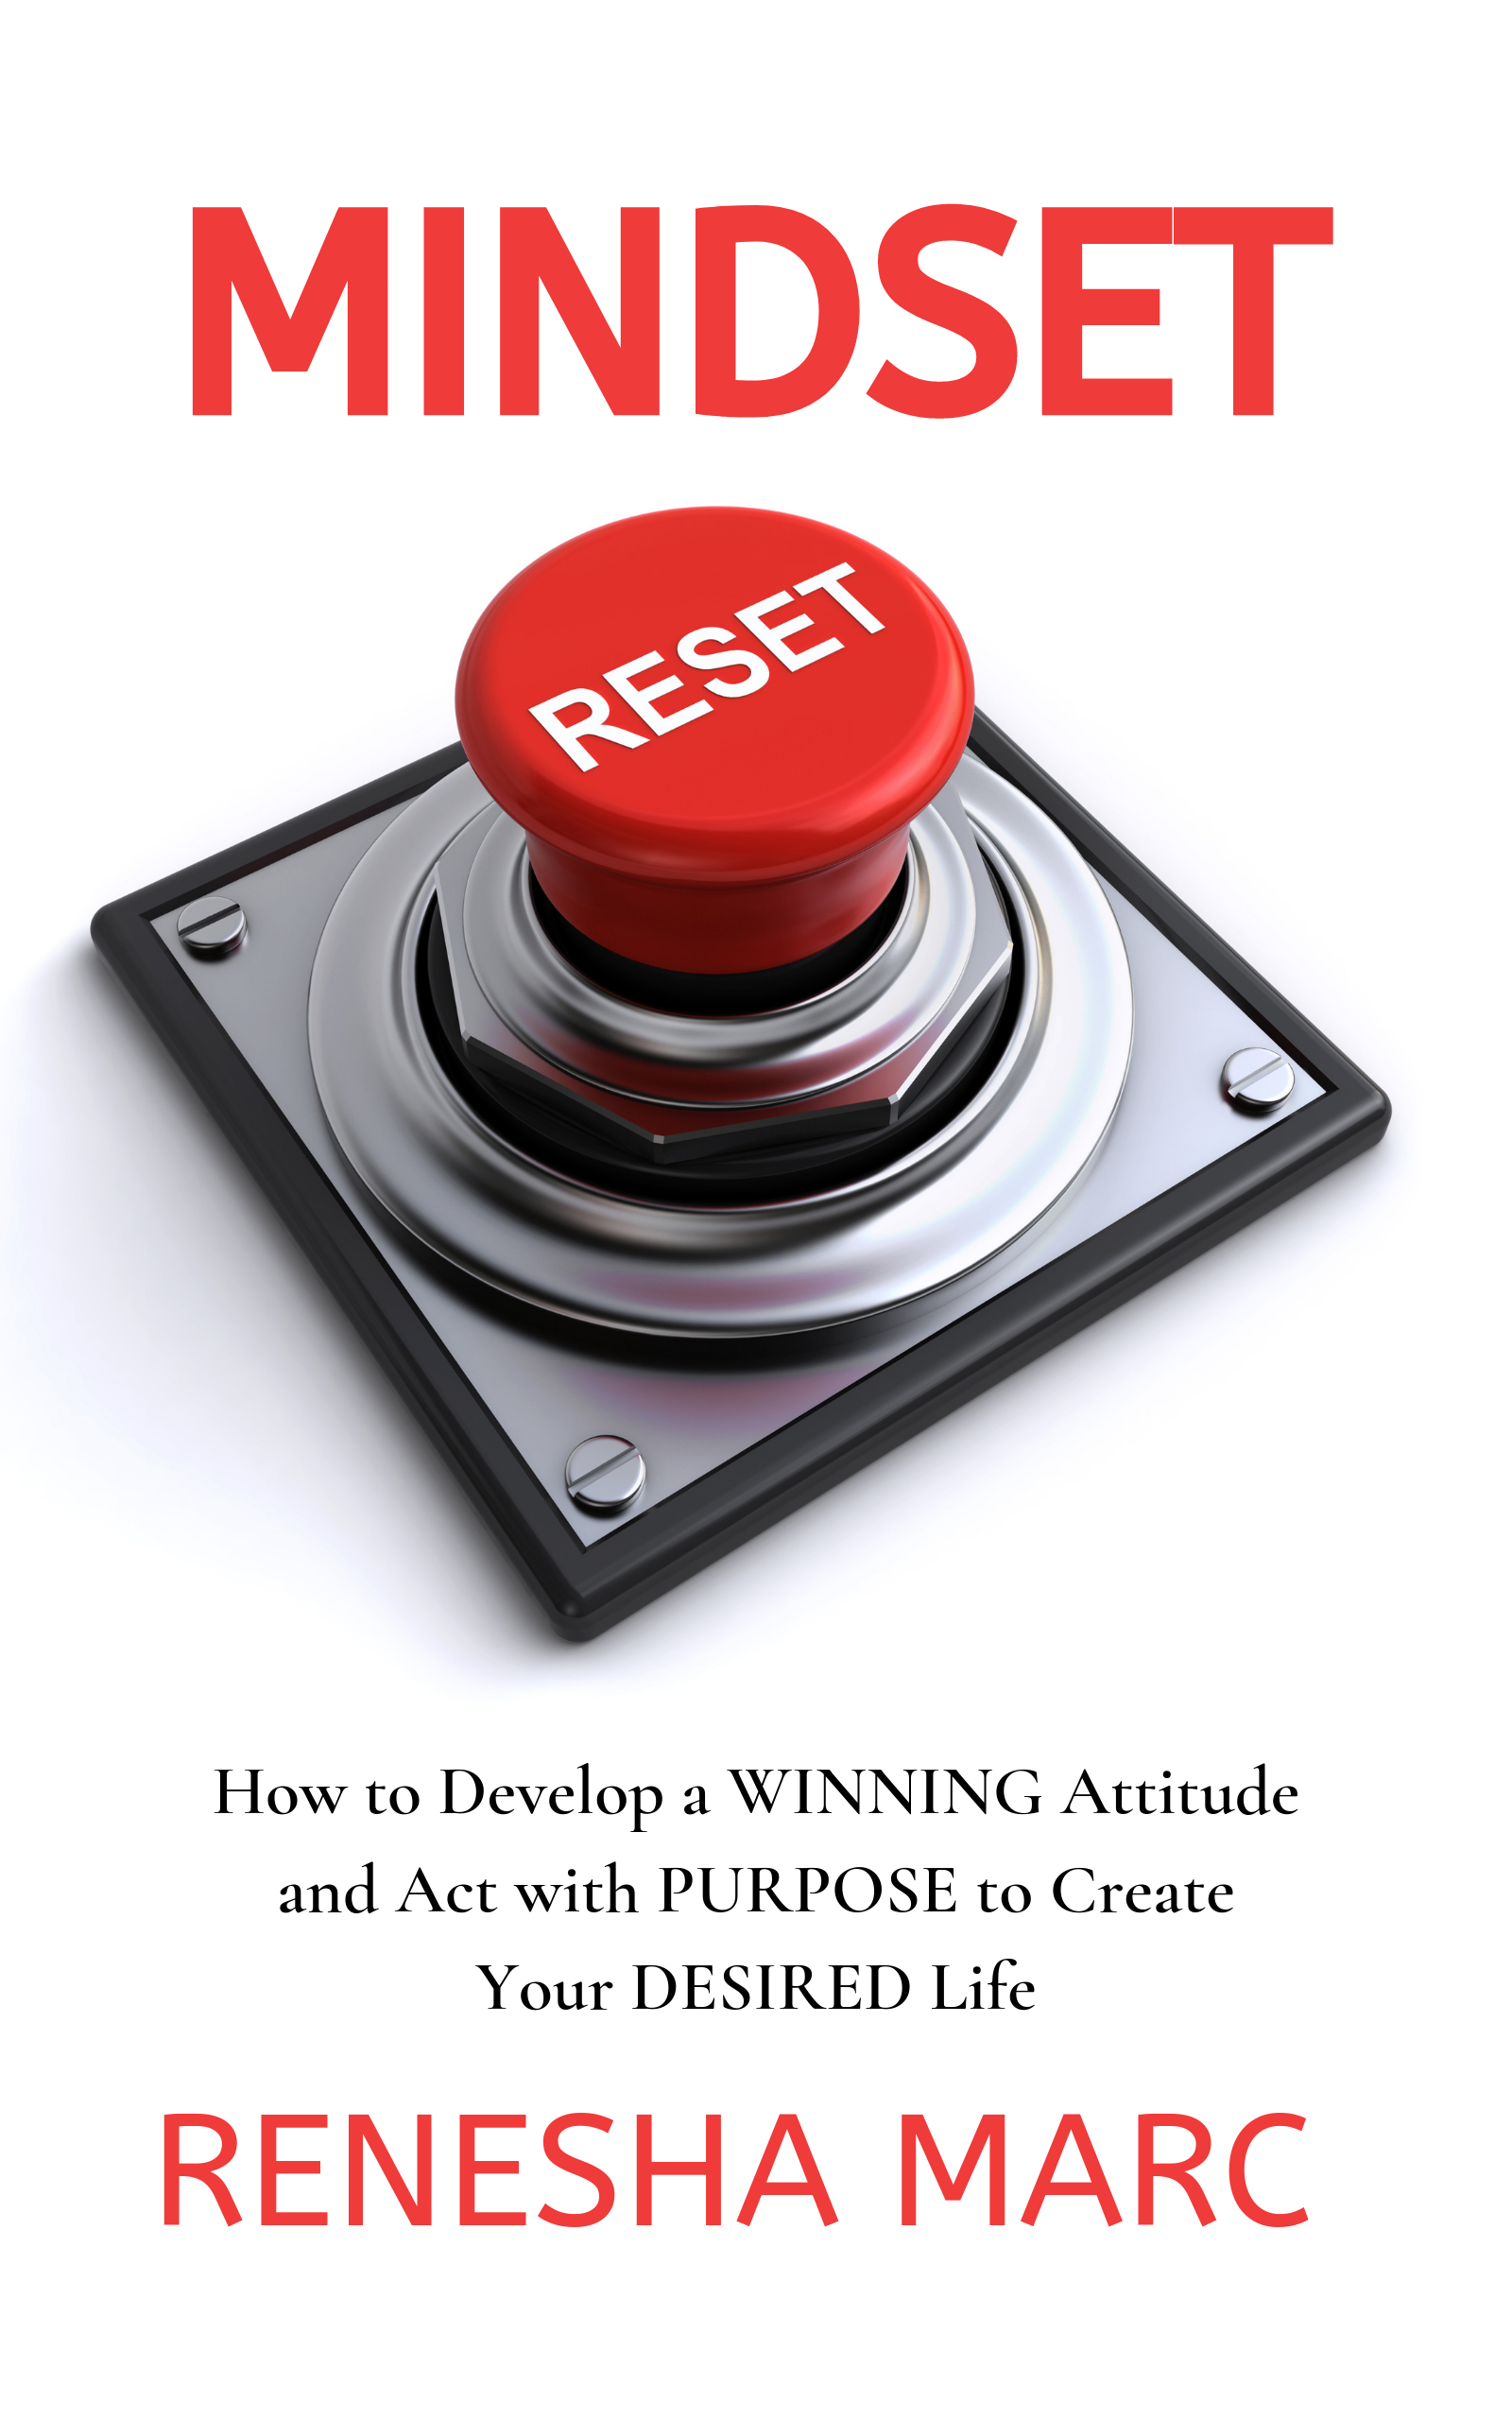 Copy of Mindset Reset official cover.png